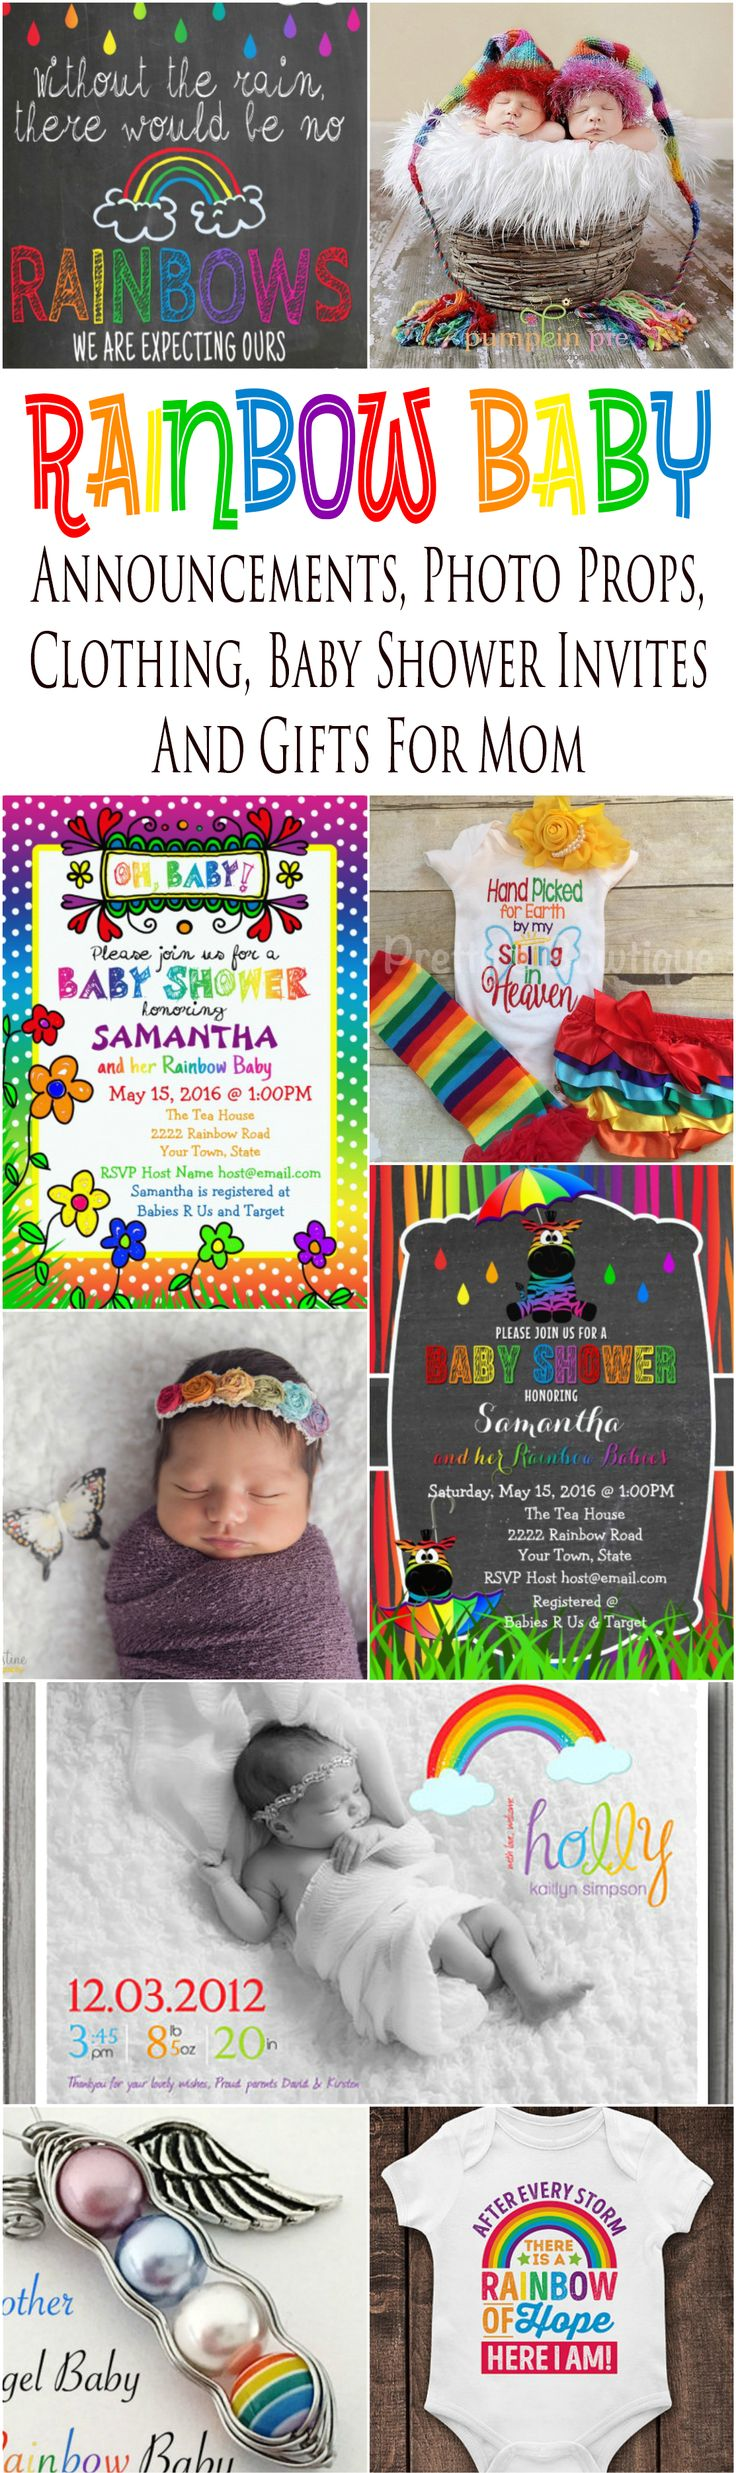 Celebrate your rainbow babies with rainbow baby announcement cards, pregnancy announcement signs, maternity and baby photo props, baby shower invitations, gift ideas for mom and infant clothing especially for celebrating a pregnancy after a loss.